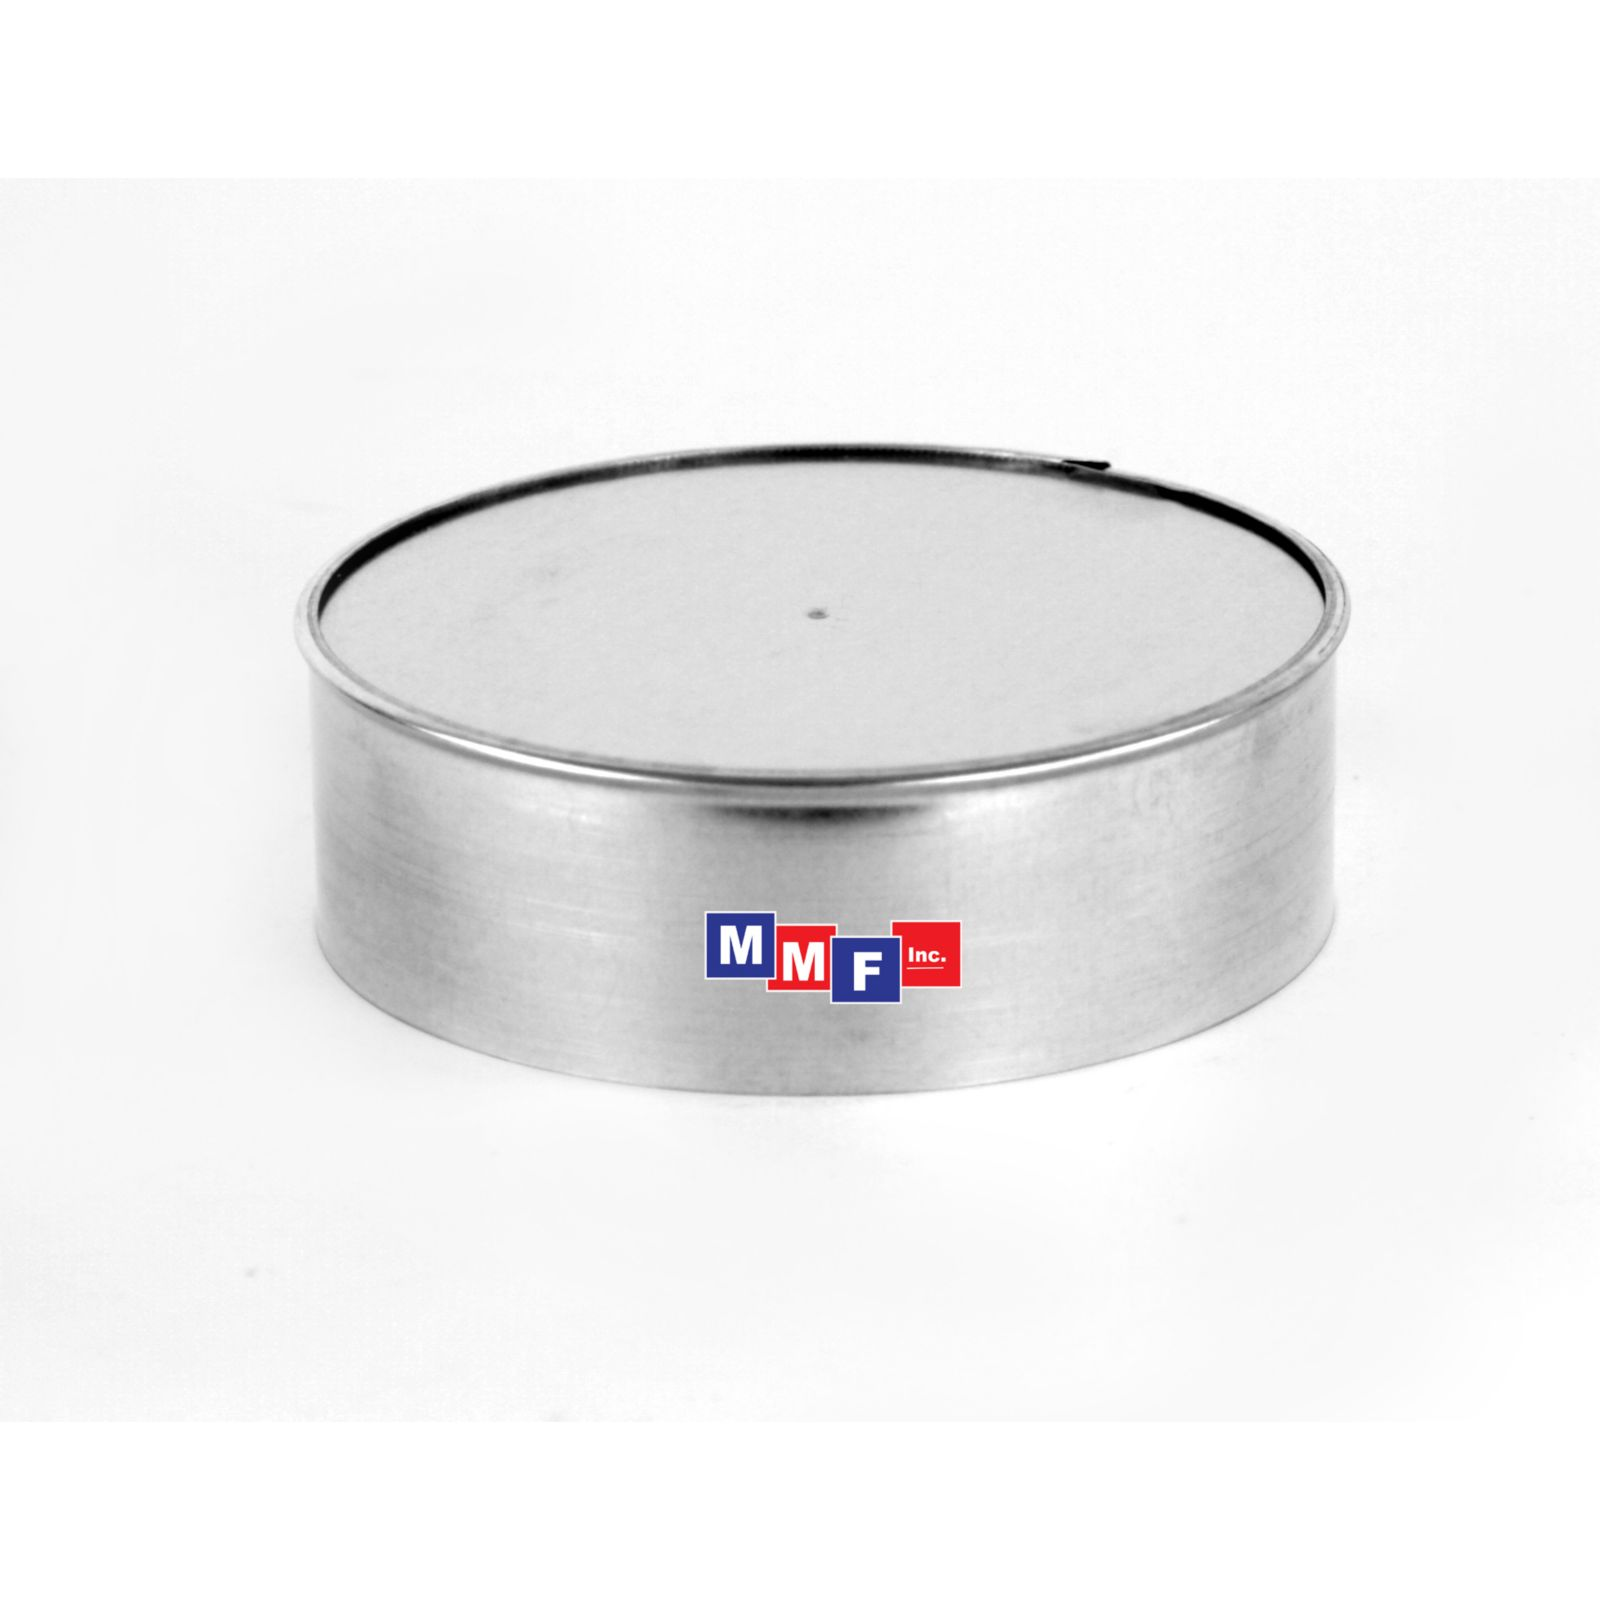 "Modular Metal ECI14 - End Cap - 26 Gauge - 2"" High 14"" Round - Galvanized"